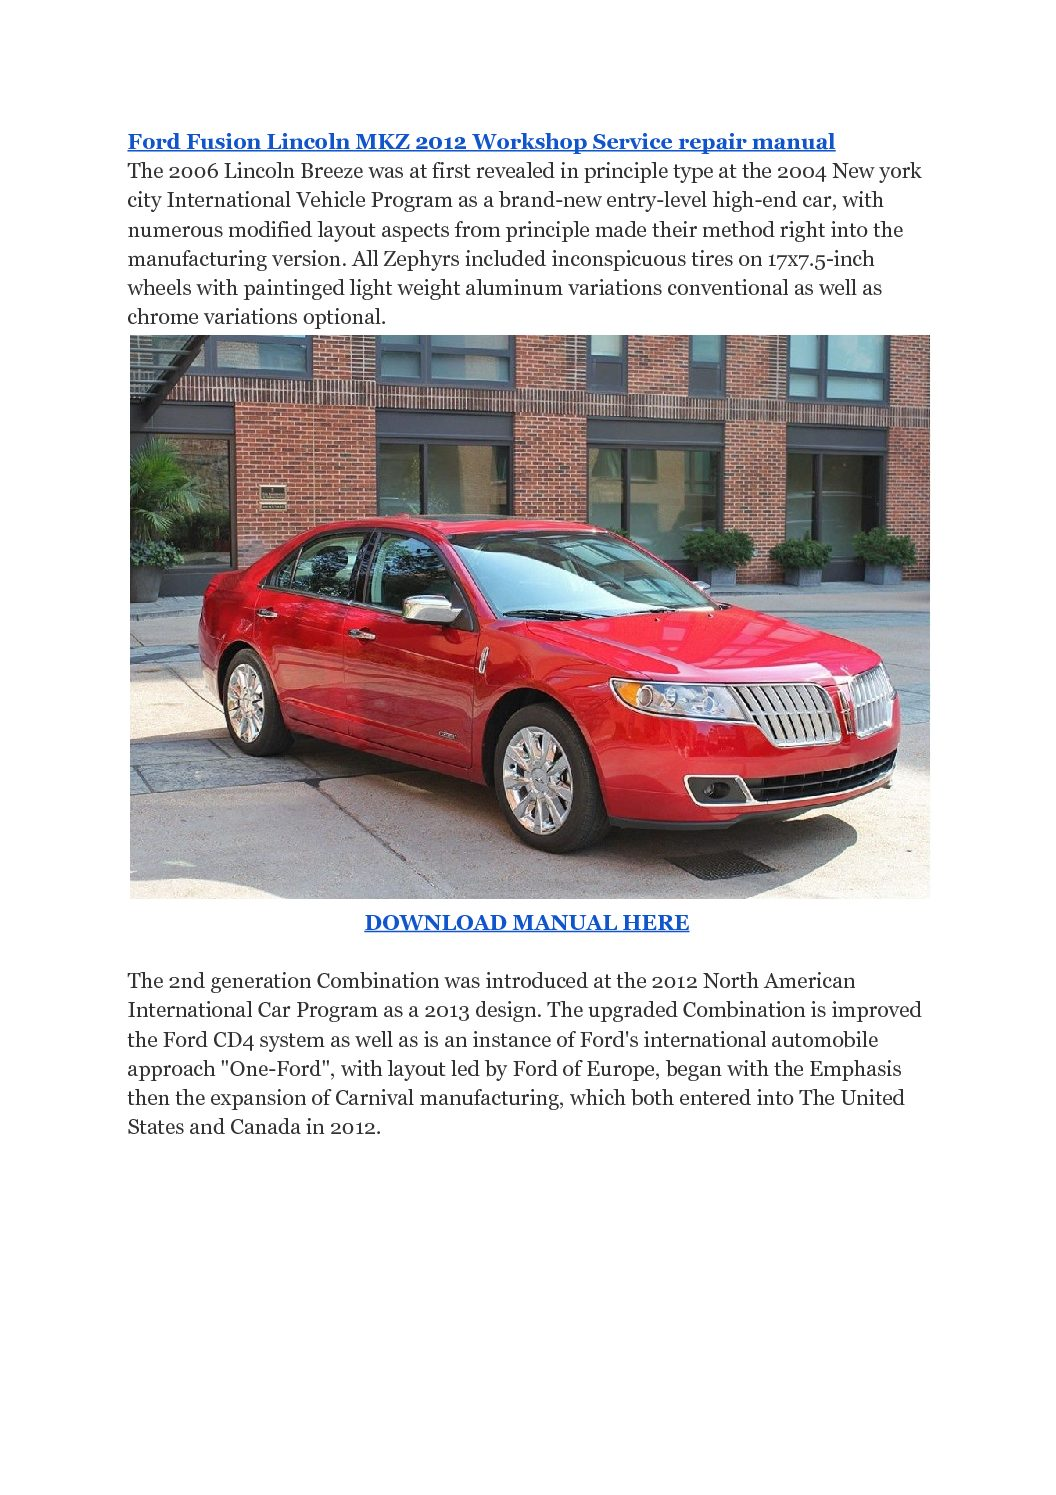 Ford Fusion Lincoln MKZ 2012 Workshop Service repair manual